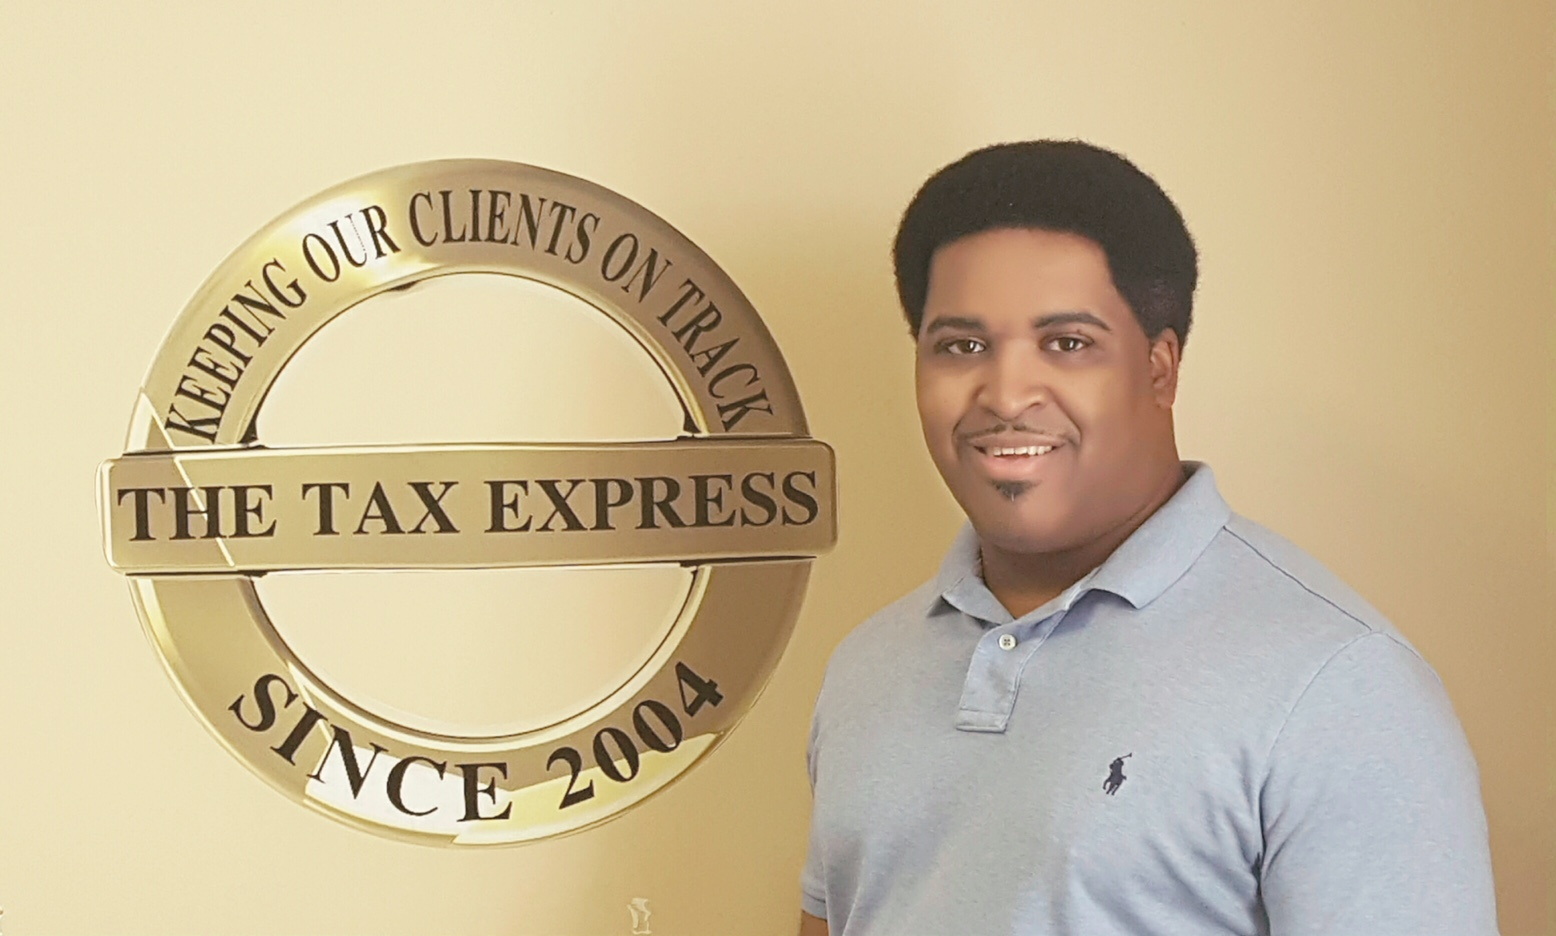 Feature Story: The Tax Express